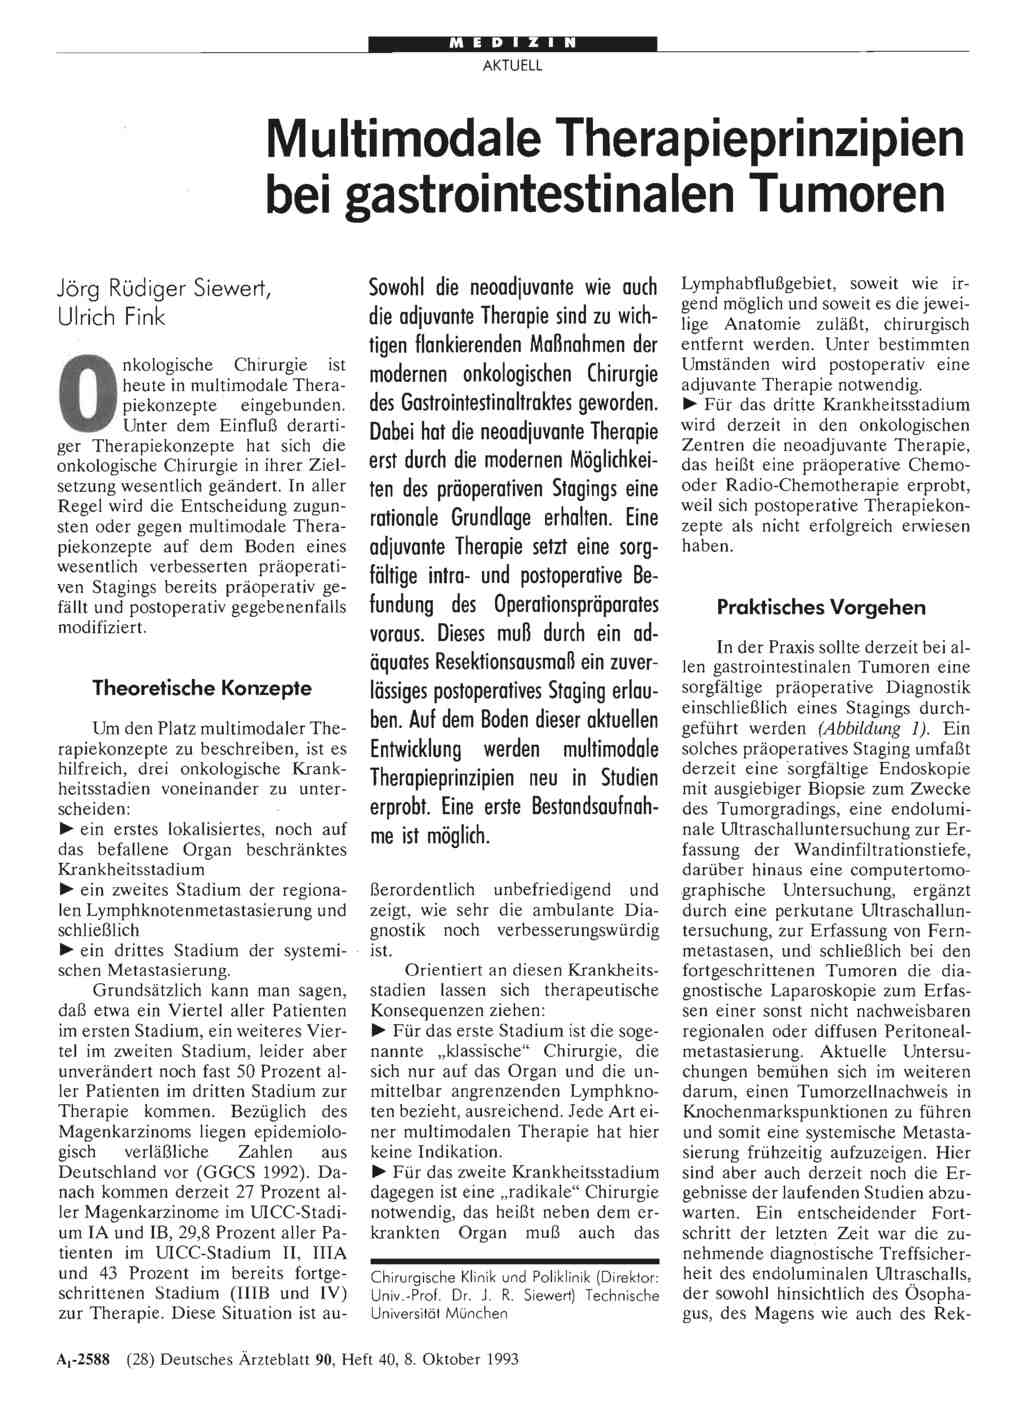 Multimodale Therapieprinzipien bei gastrointestinalen Tumoren